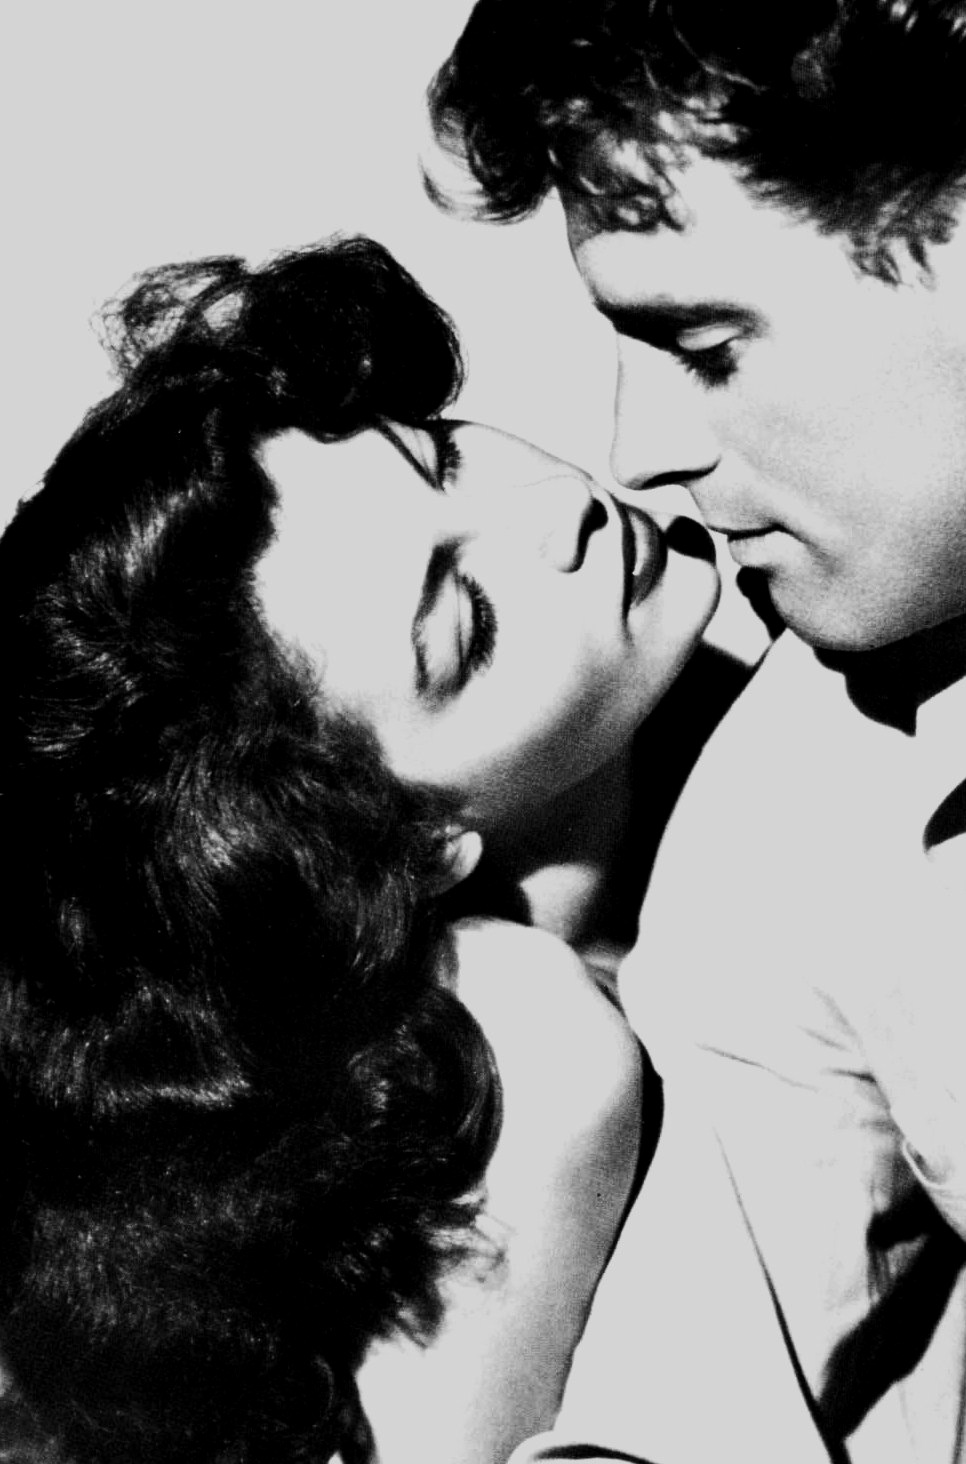 anantoinetteaffair:   Ava Gardner and Burt Lancaster in a still for 'The Killers' (1946)  stop being this perfect! x.x